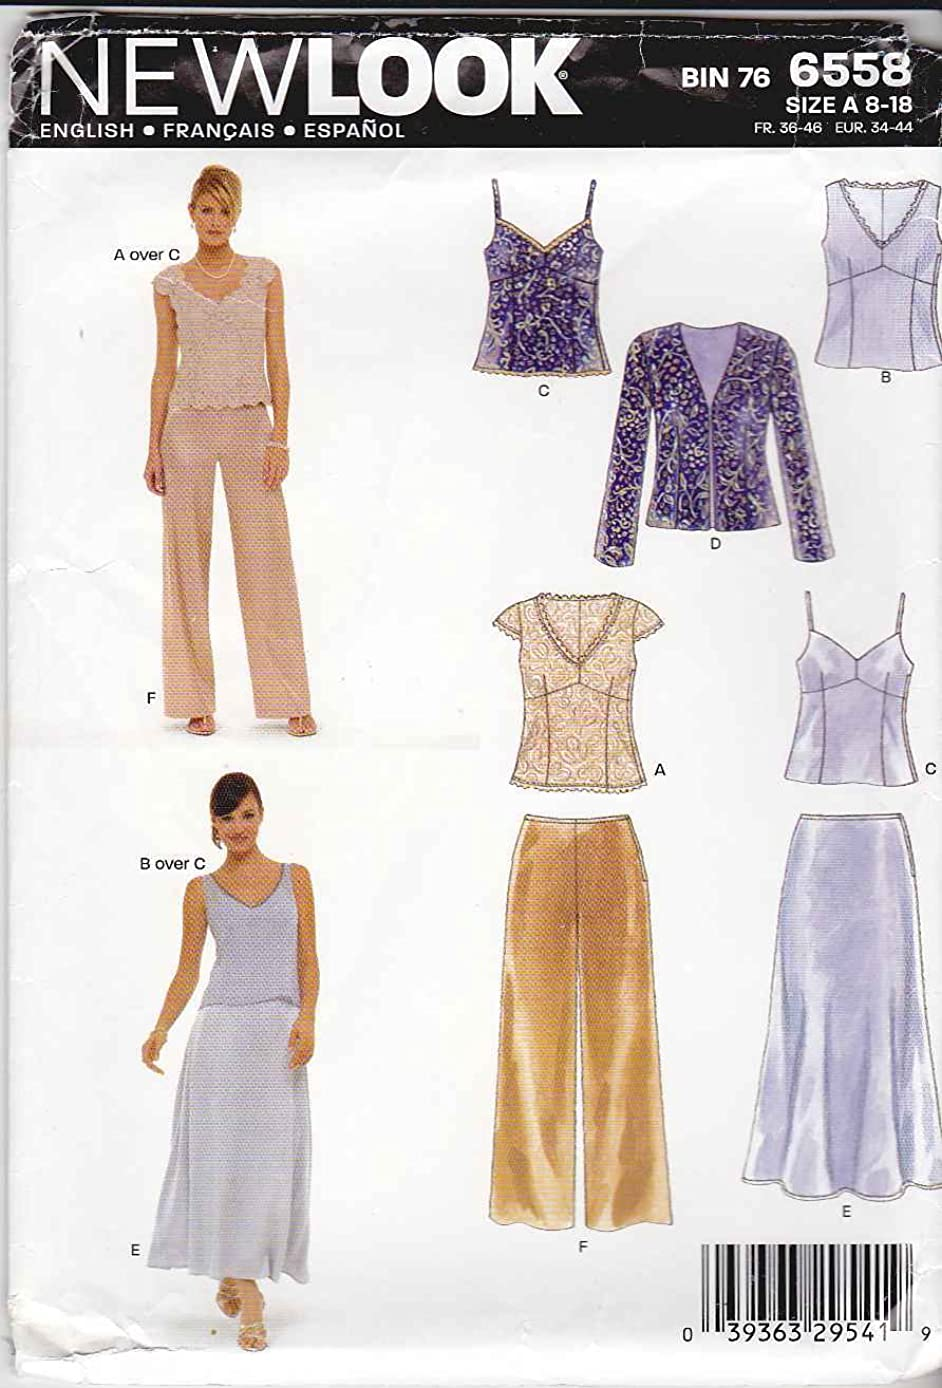 New Look Sewing Pattern 6558 Misses Special Occasion Dresses, Size A (8-10-12-14-16-18)